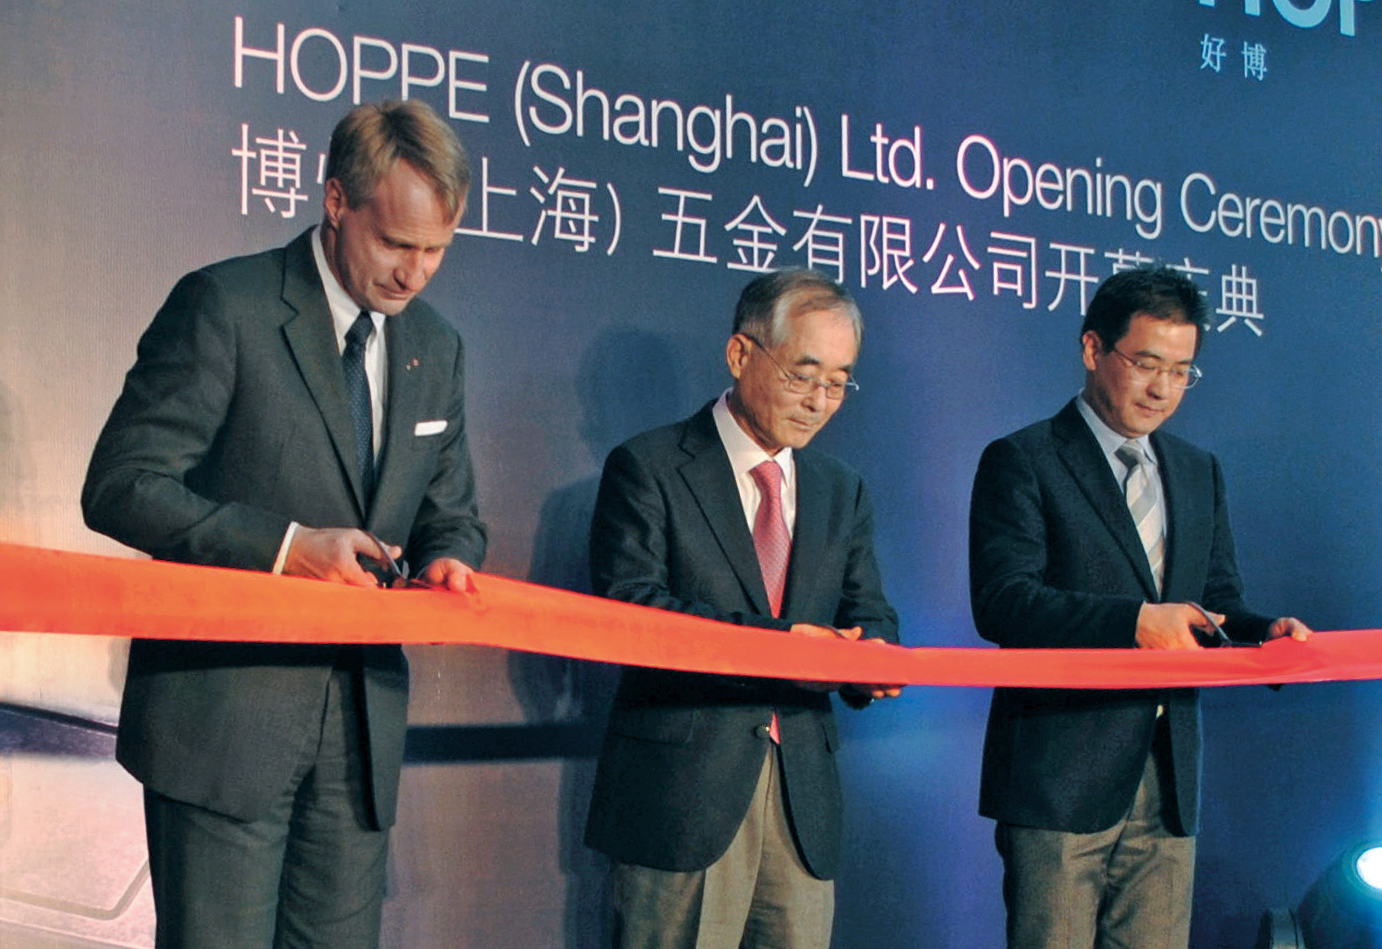 Inauguration HOPPE (Shanghai) Ltd.